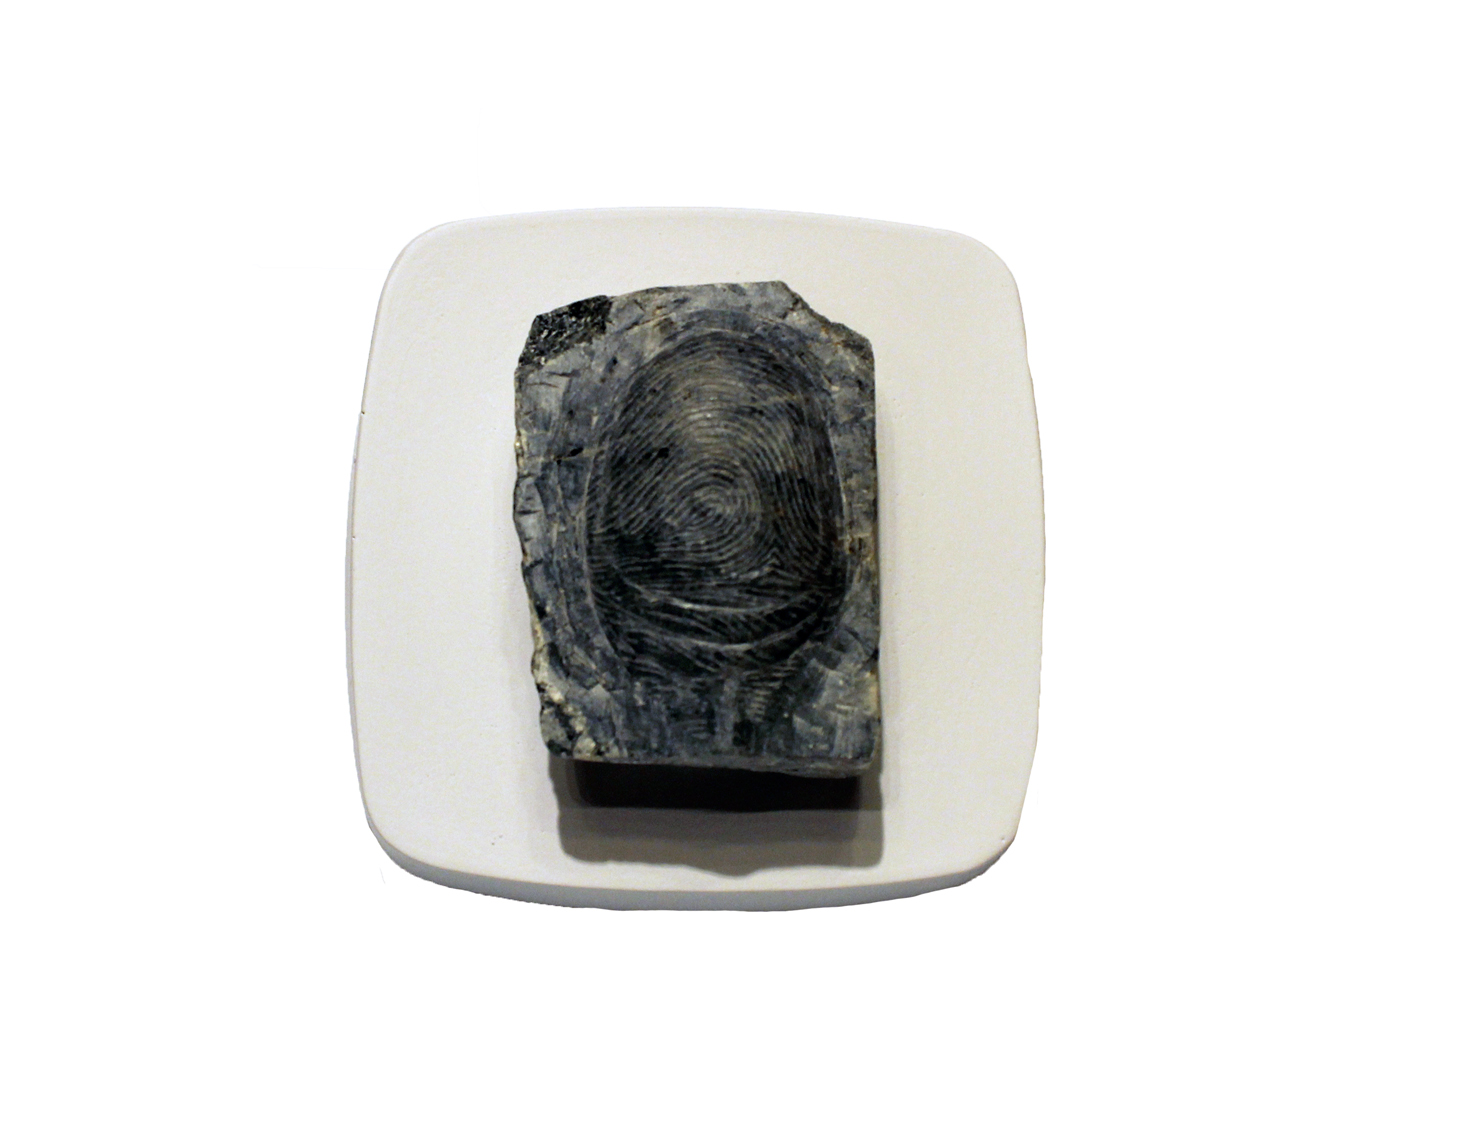 TheHandoftheArtistpositivethumbimpressionmoquette_2014_soapstone_6.5x8x4_2.5x3x1.5_Available